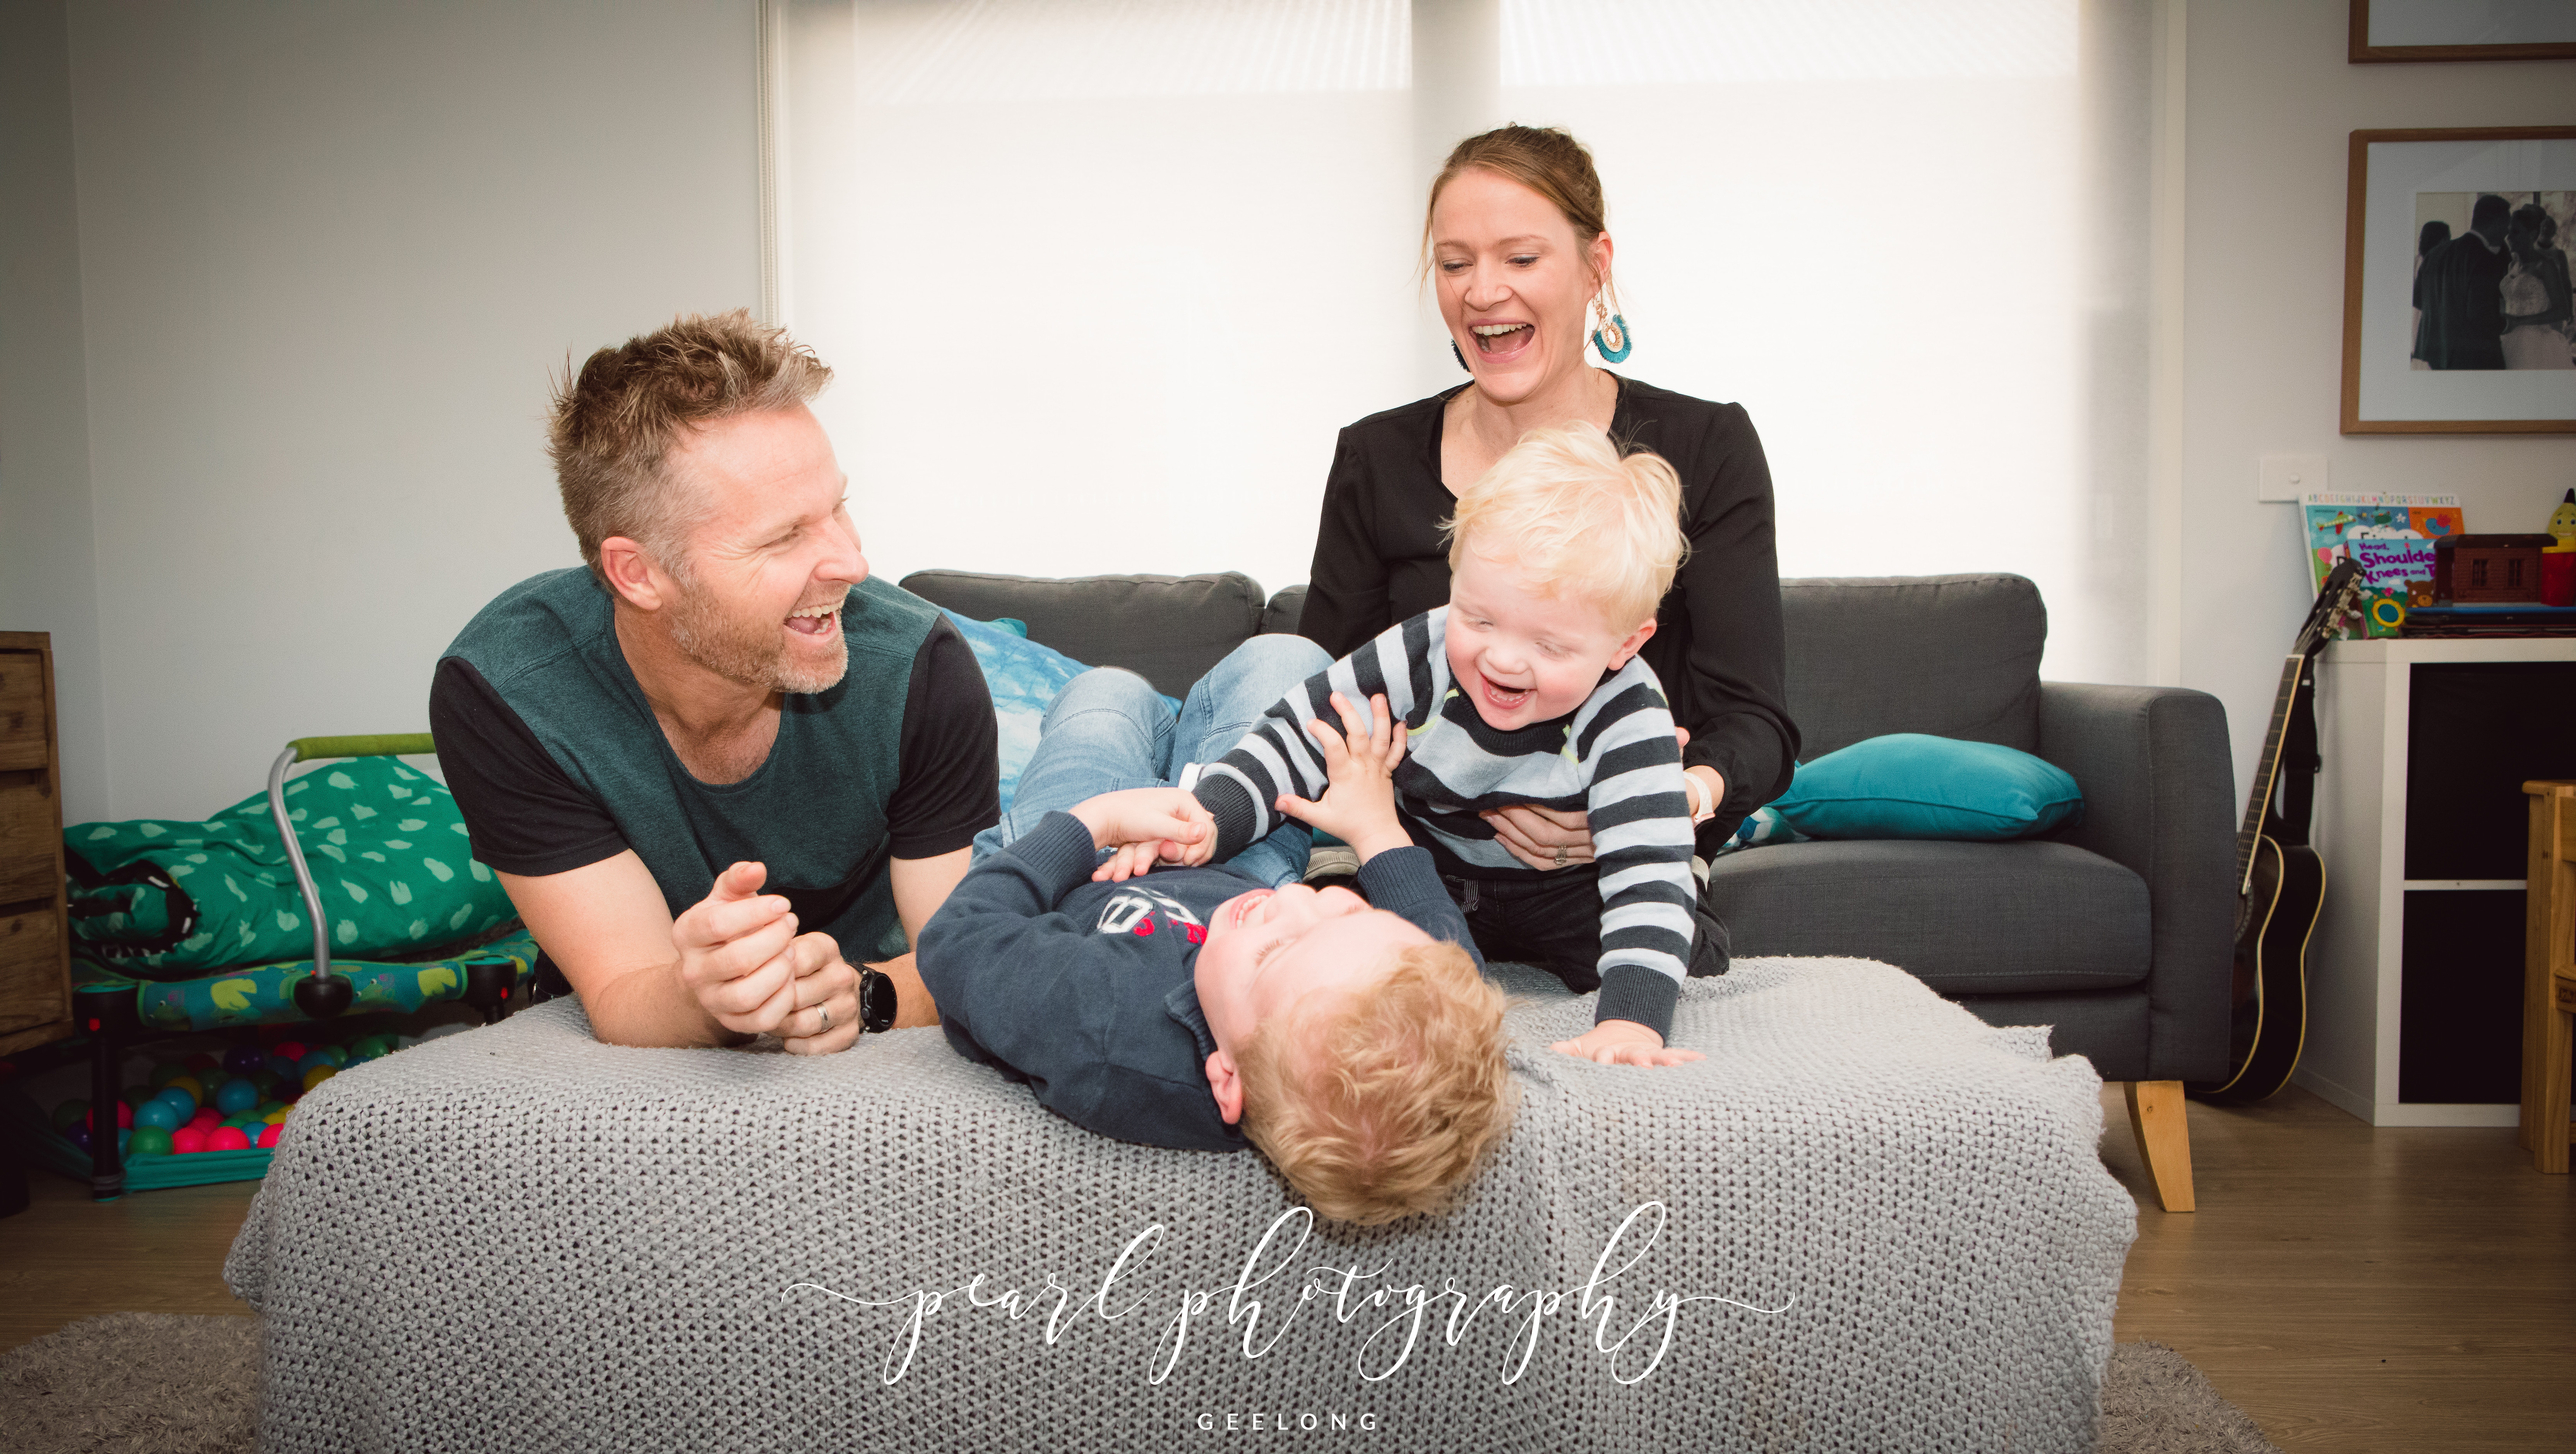 Lifestyle Photography Session